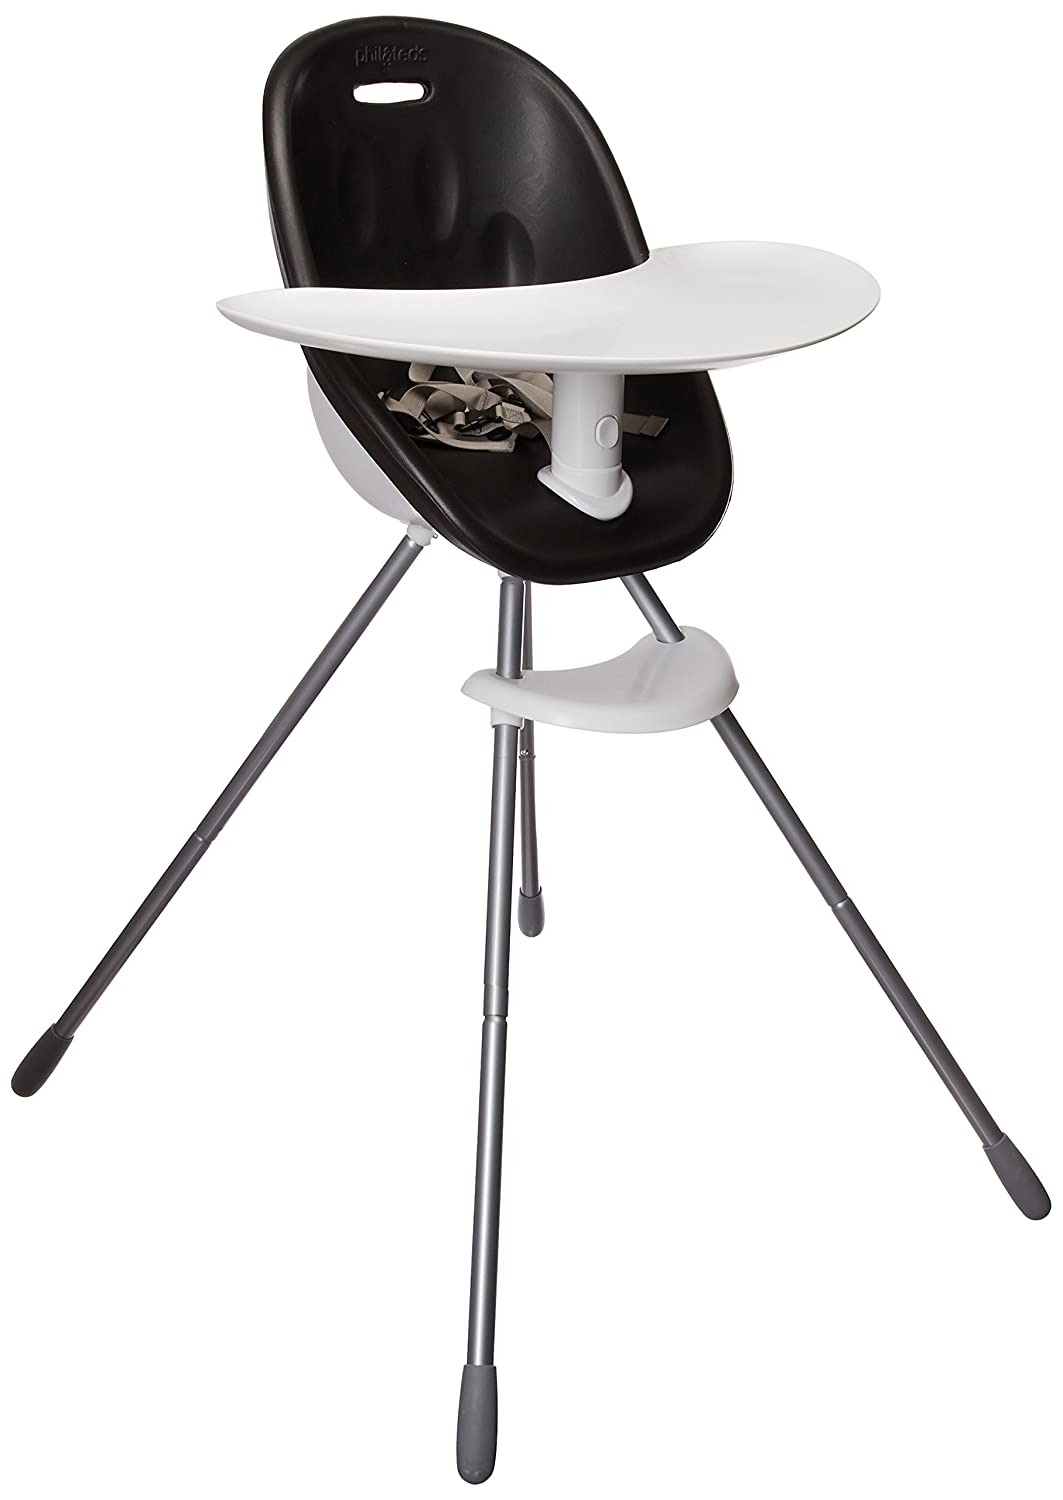 phil & teds Mountain Buggy Poppy High Chair, Black phil&teds poppy_v1_5